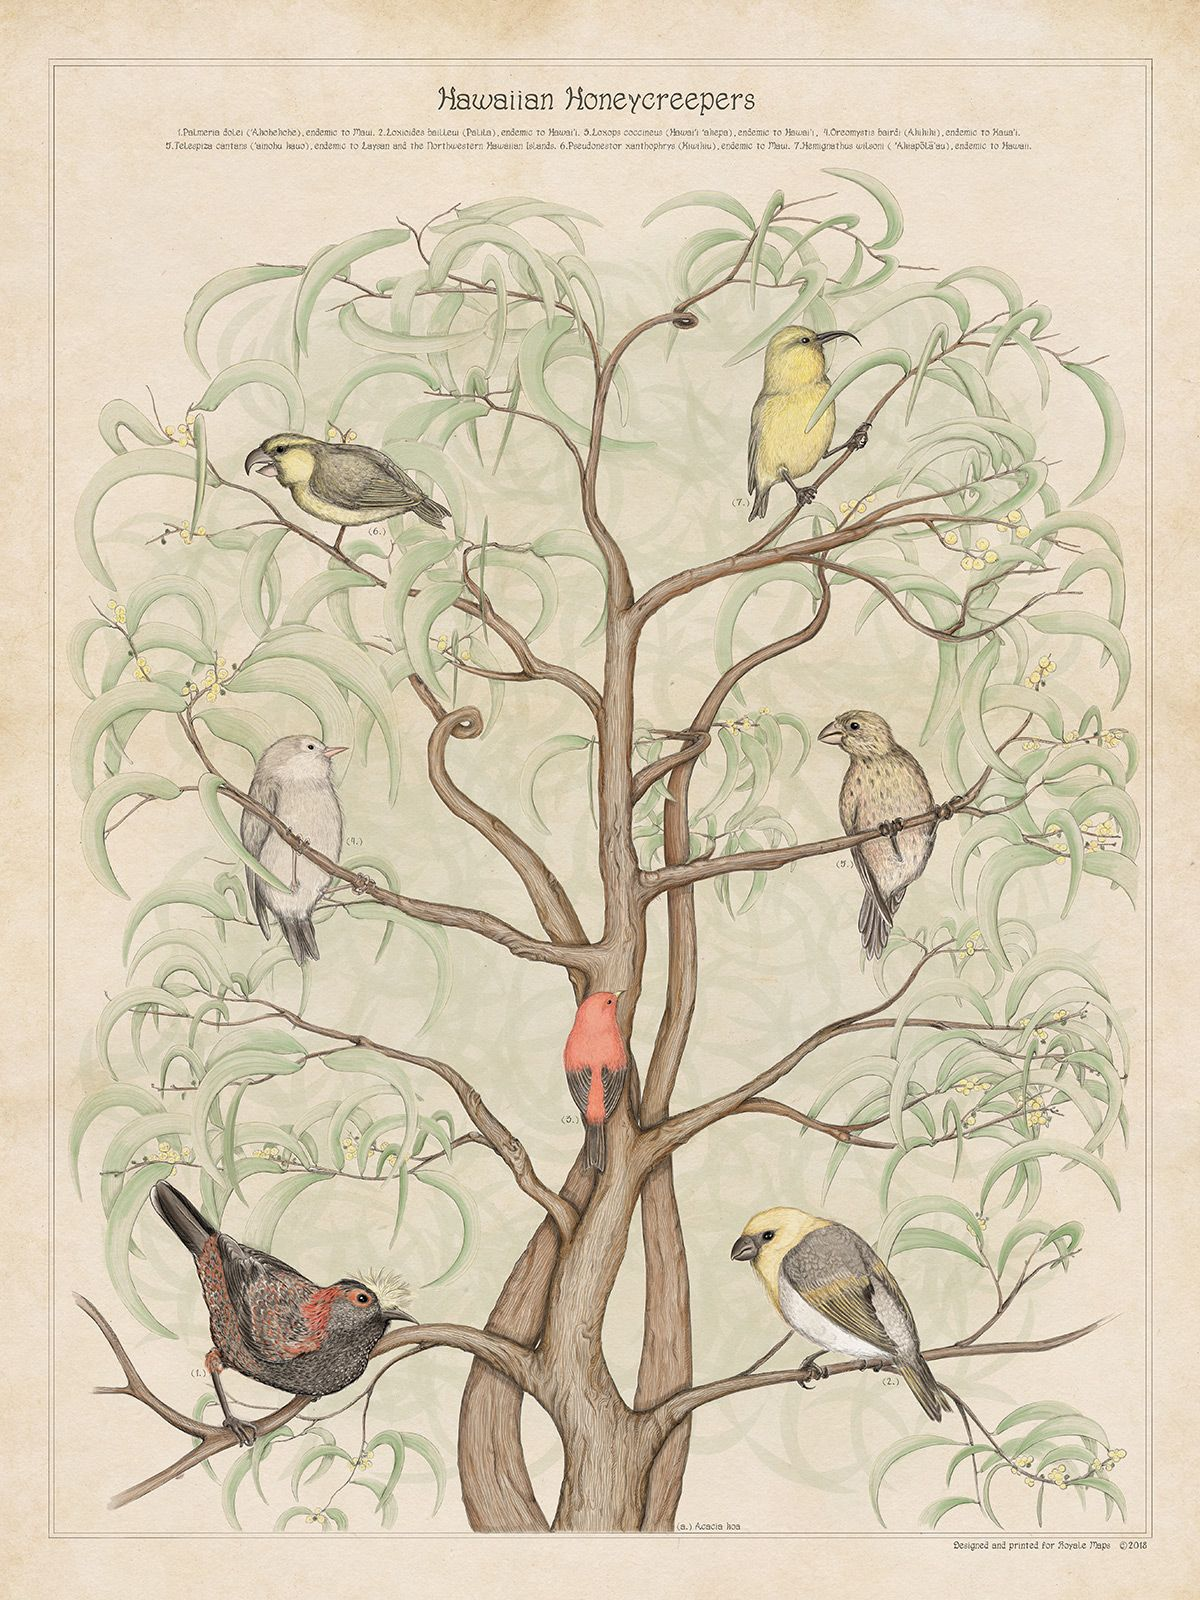 Endemic birds from Hawaii zoology print By Royale Maps Zoology 1200x1600